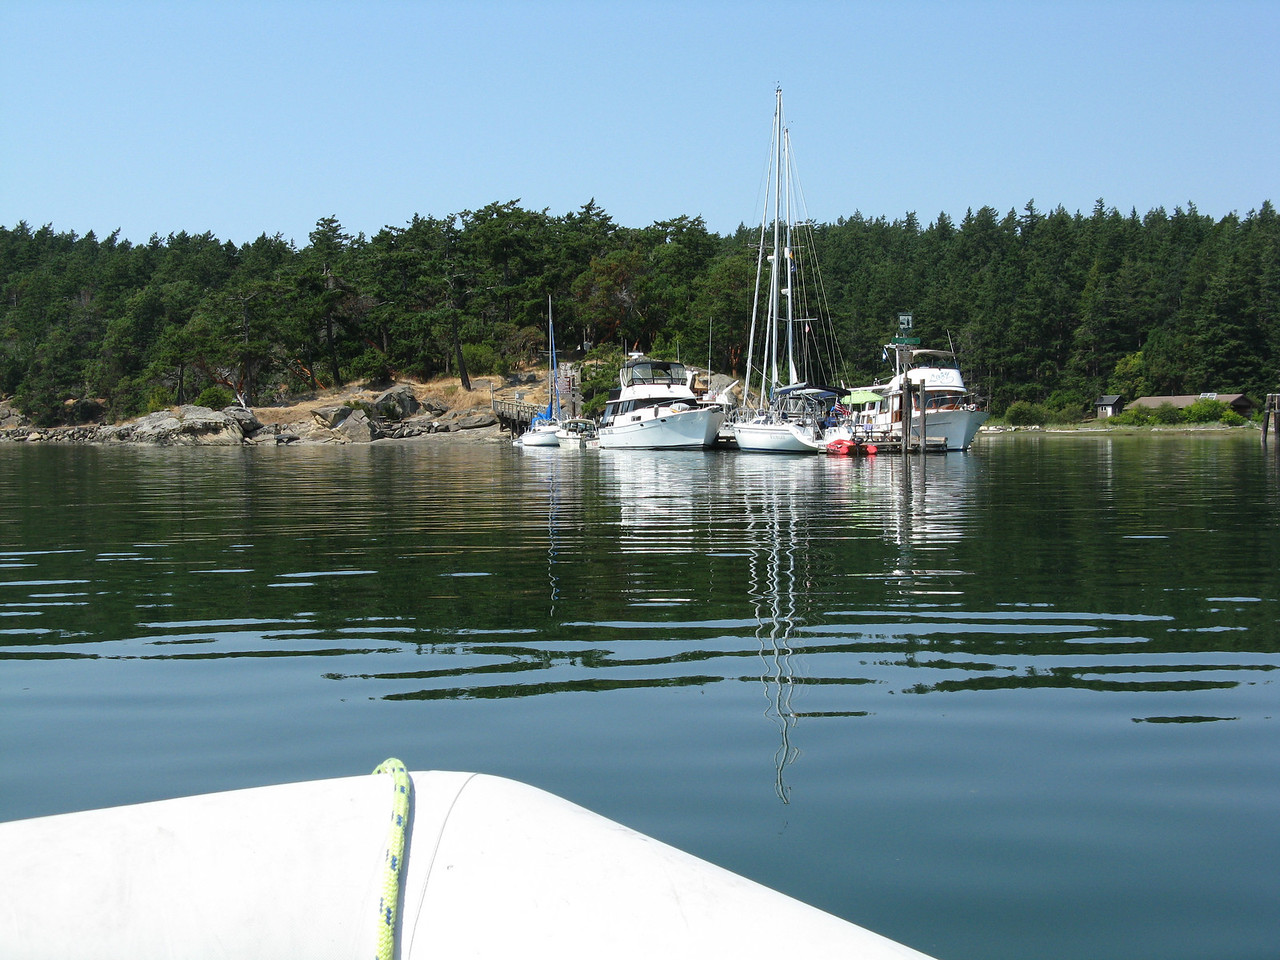 We arrived in Fossil Bay on Sucia Island.   Incredibly, we were able to tie up to the dock.   This view is from the dinghy.